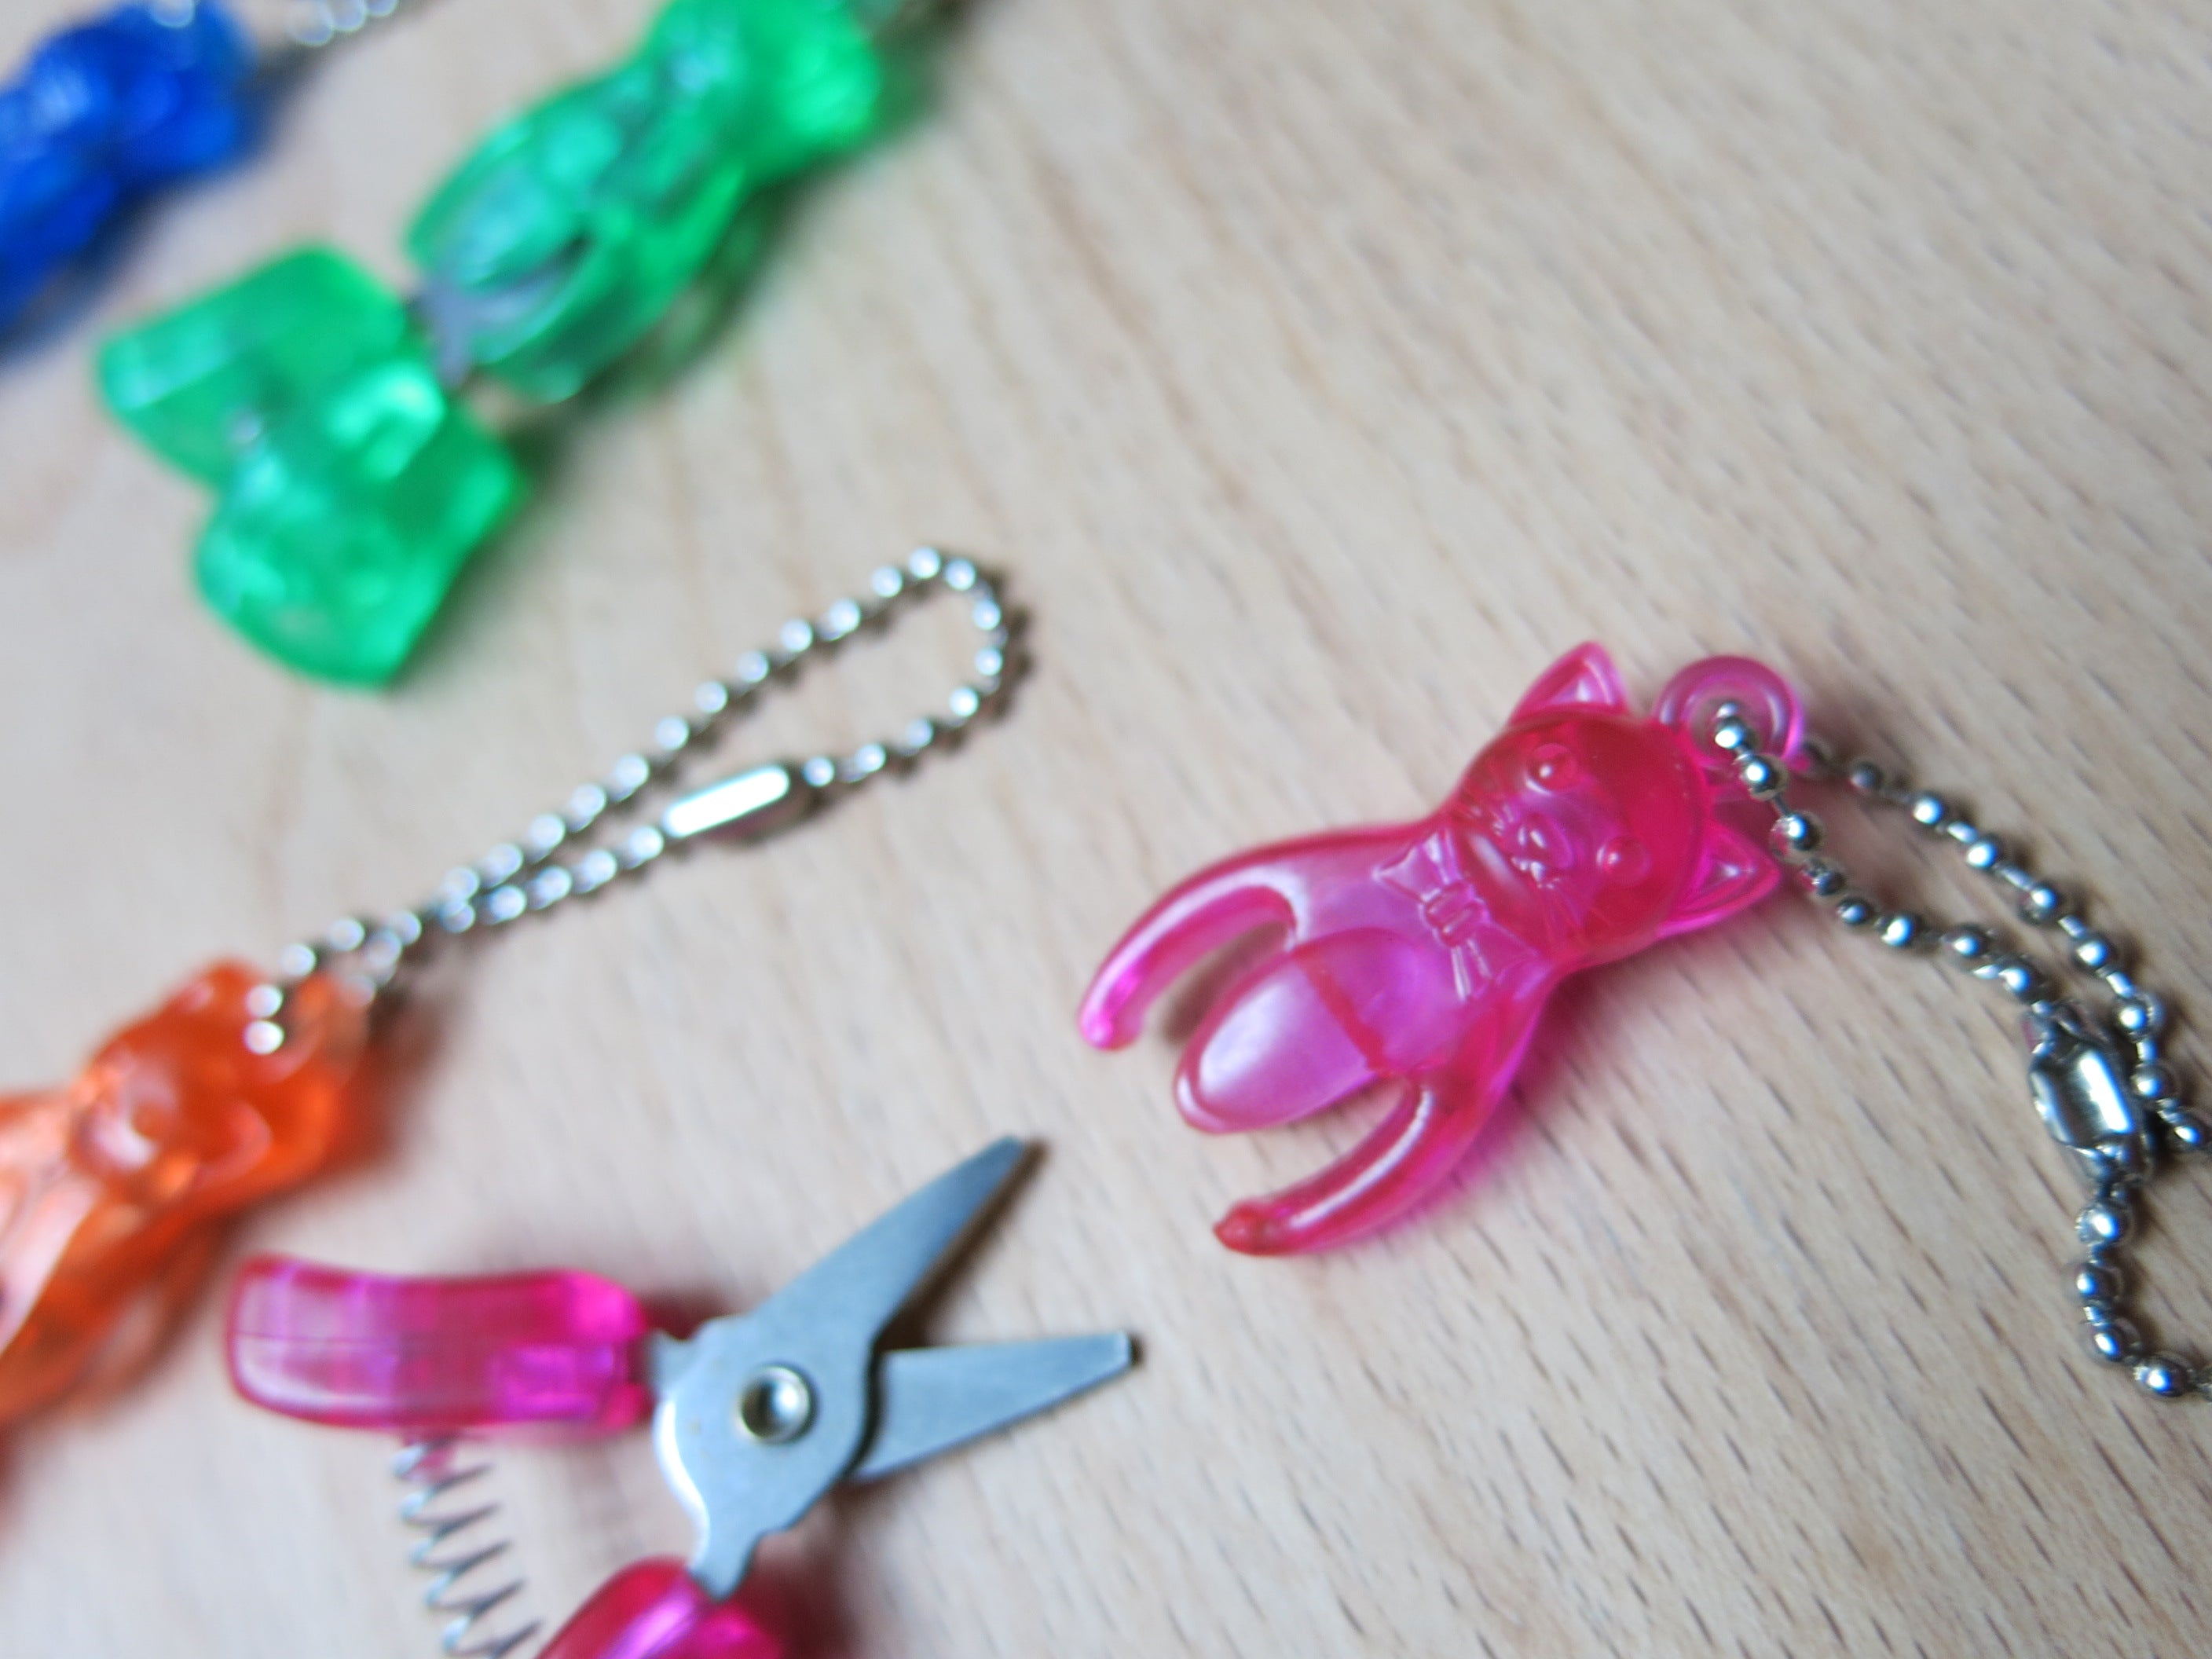 hiyahiya pink kitty yarn snips tool knitting notion